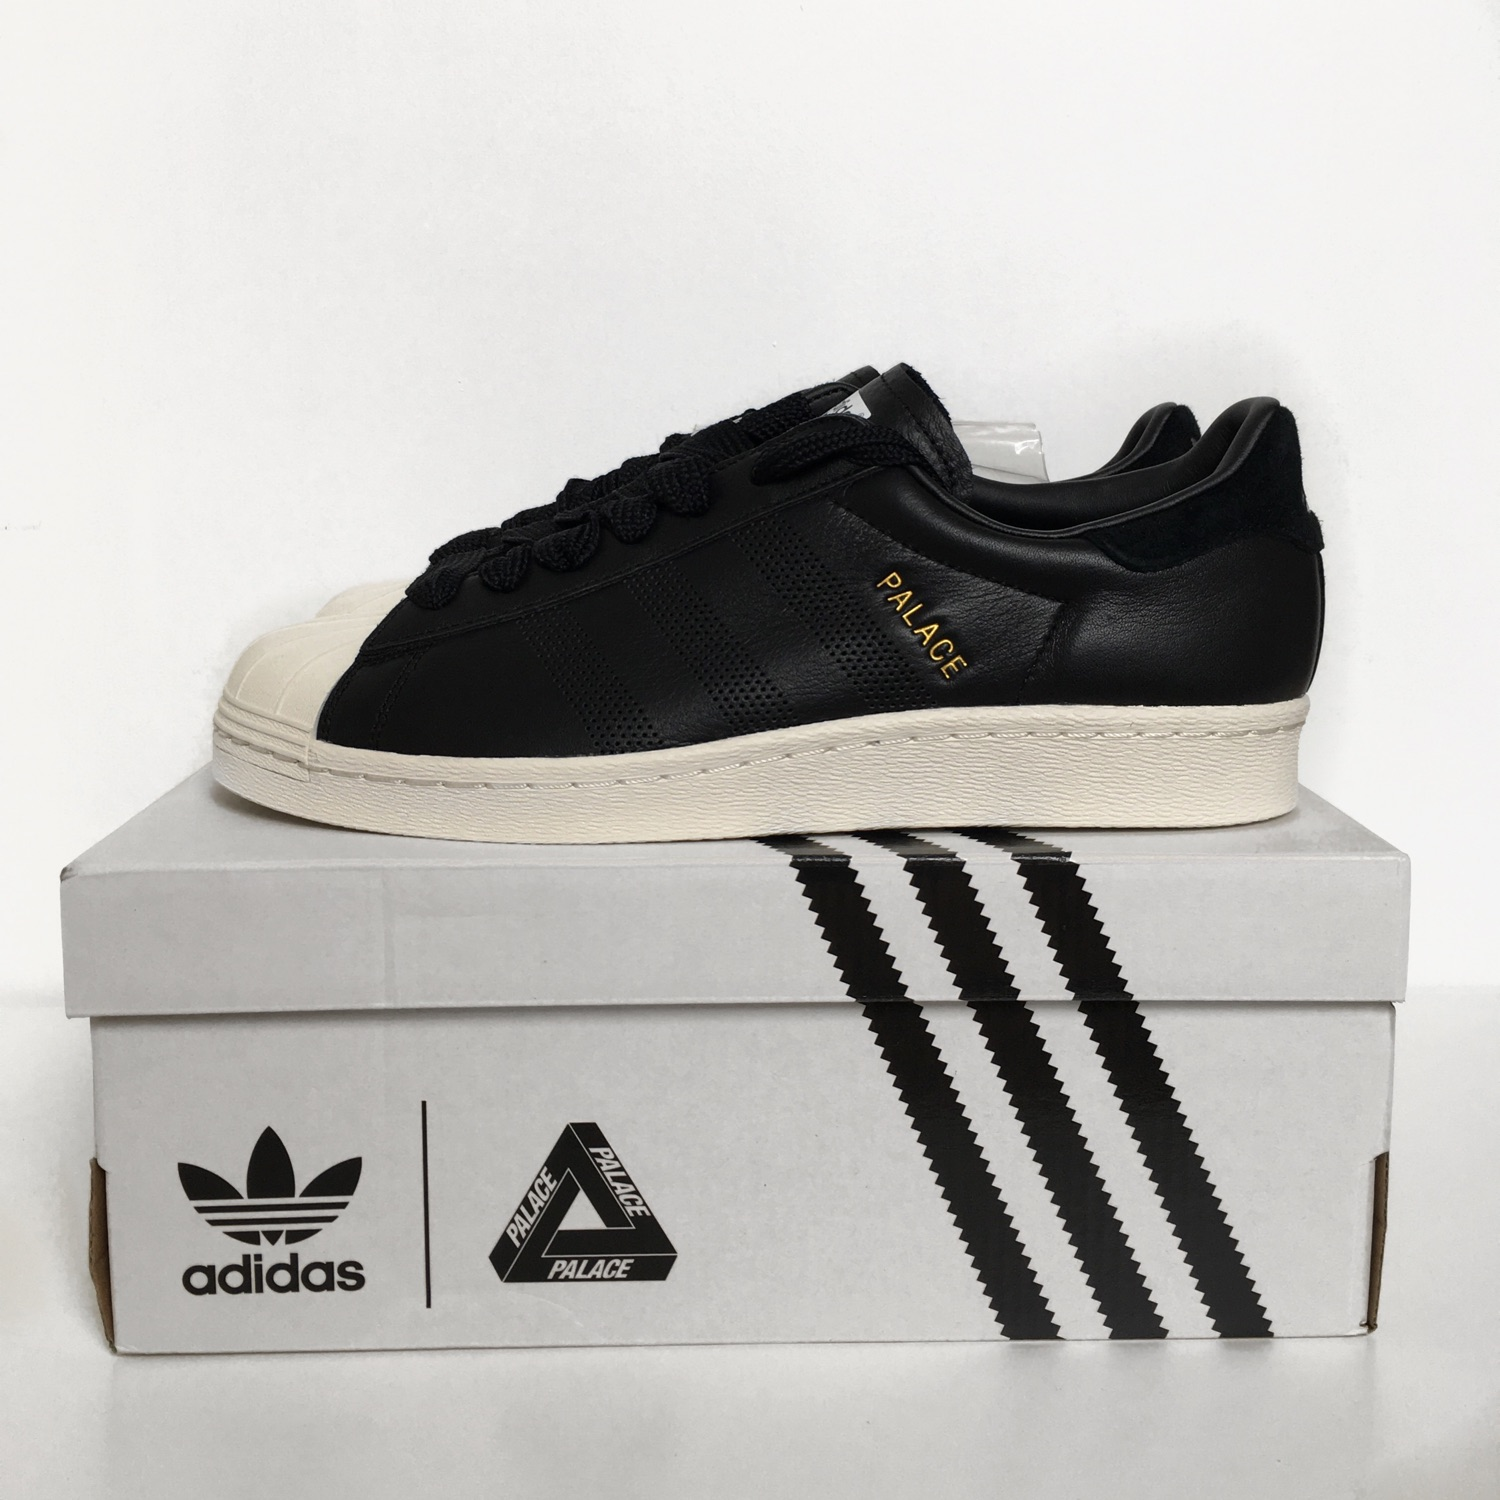 Encommium clima puenting  Palace X Adidas Superstar Black (Trades Accepted)